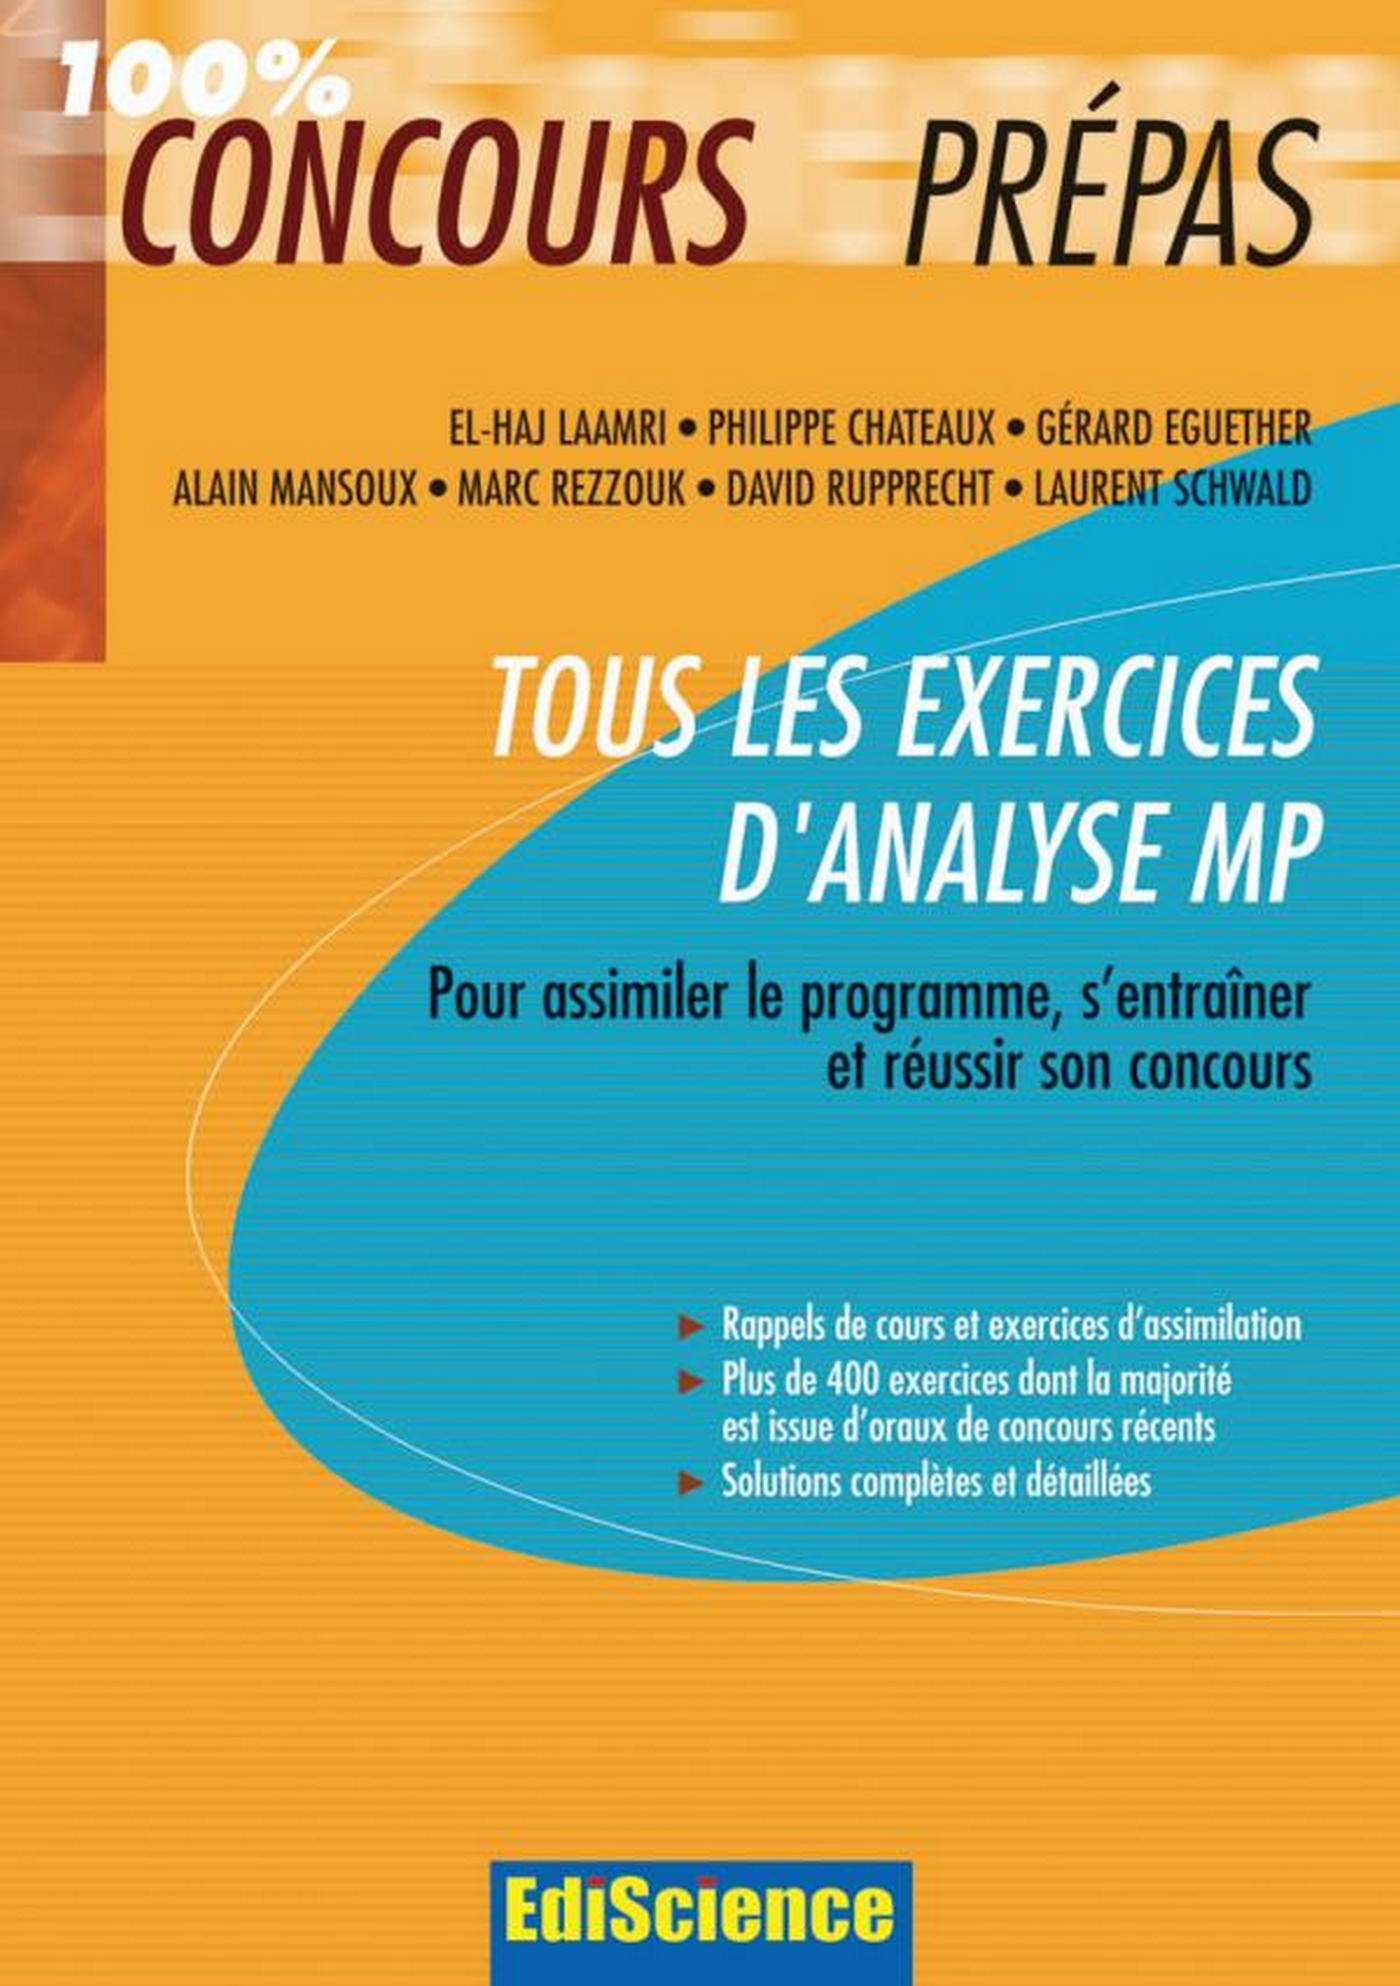 Tous les exercices d'Analyse MP